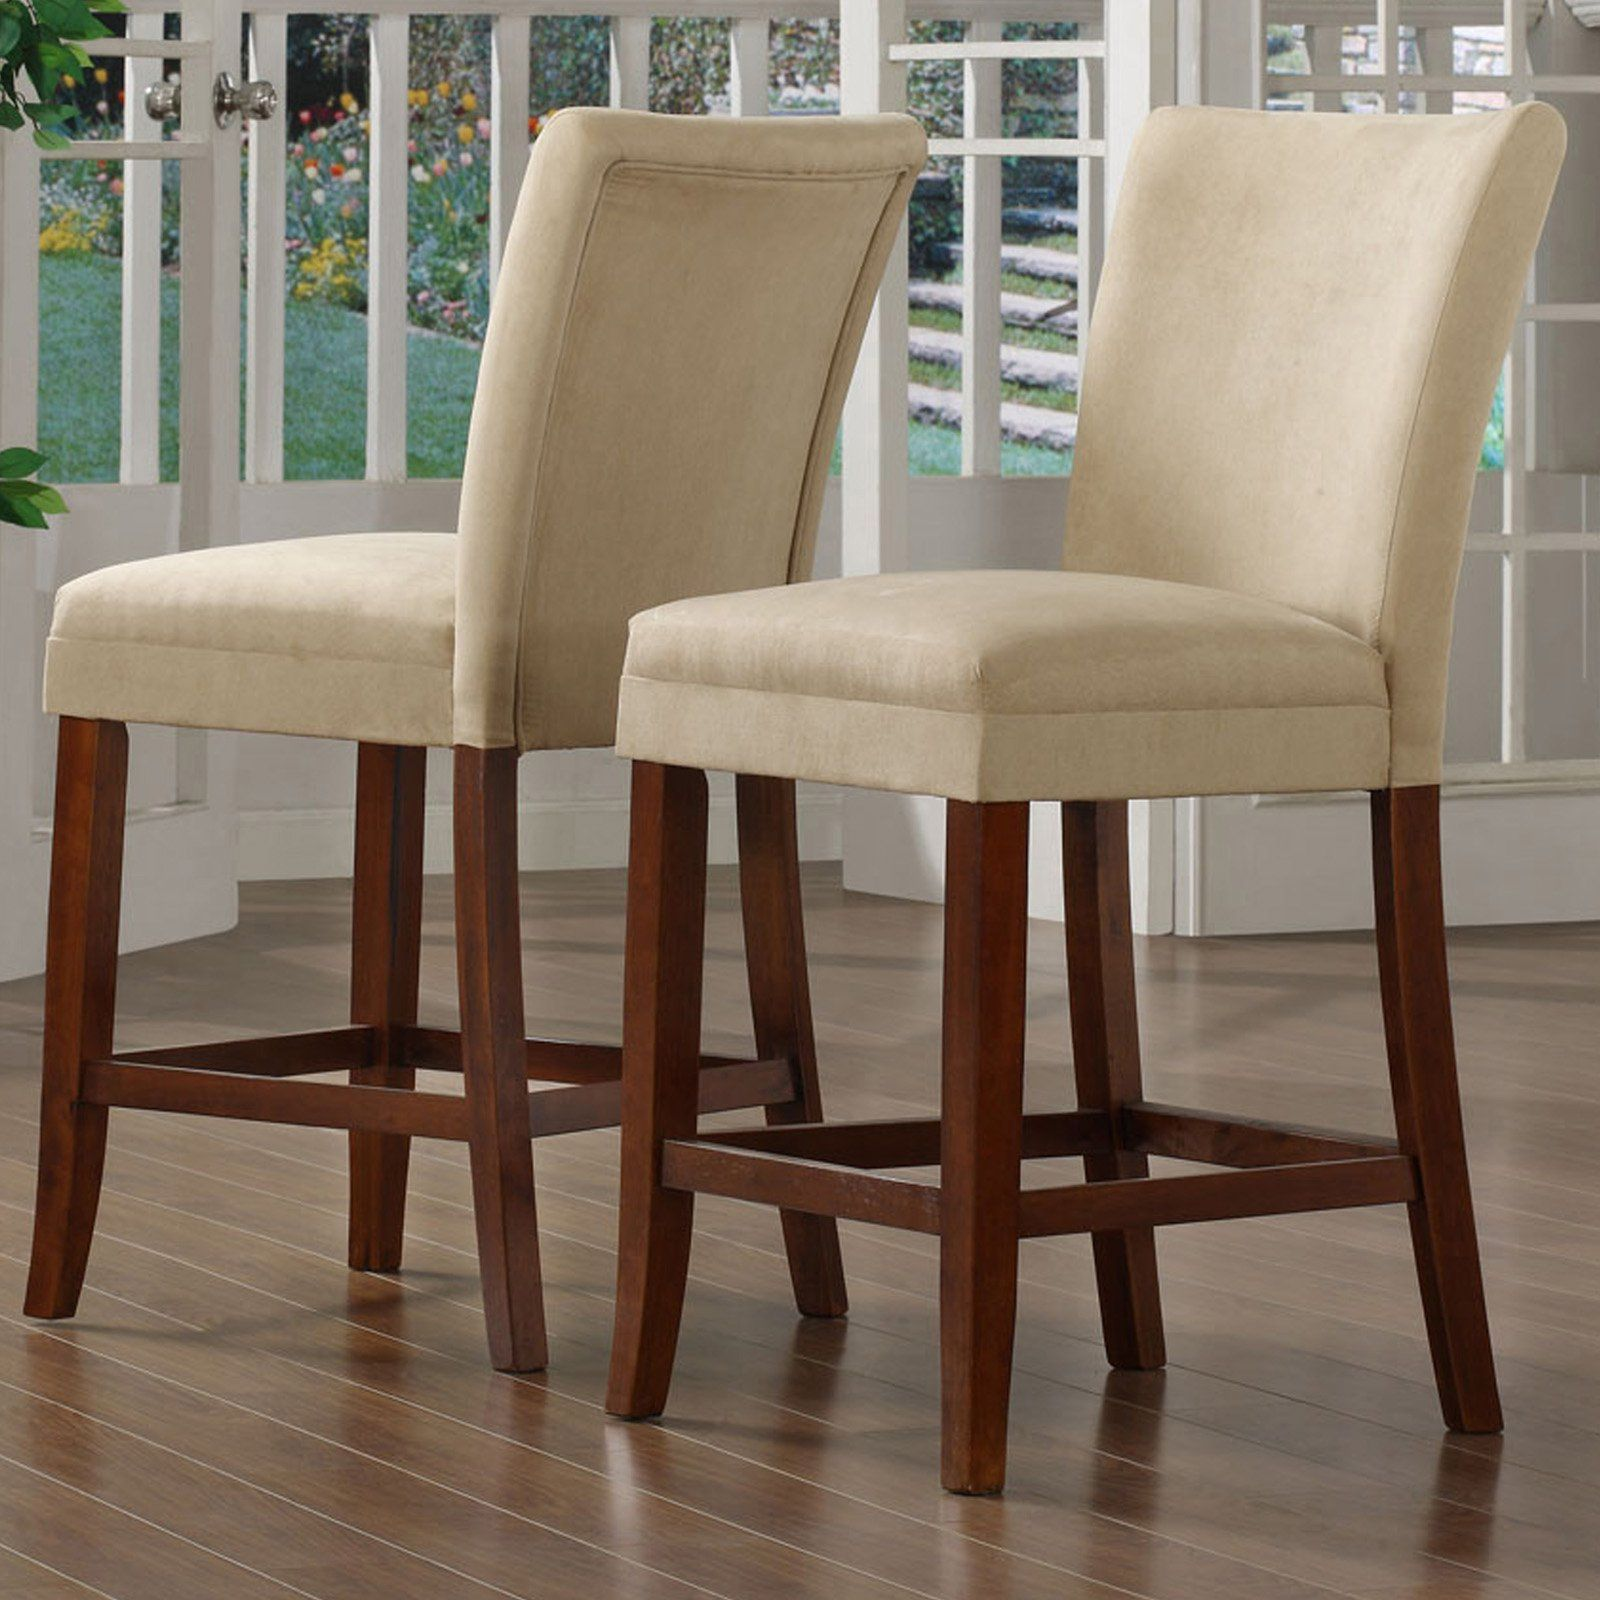 Achillea Counter Height Stool Microfiber Set Of 2